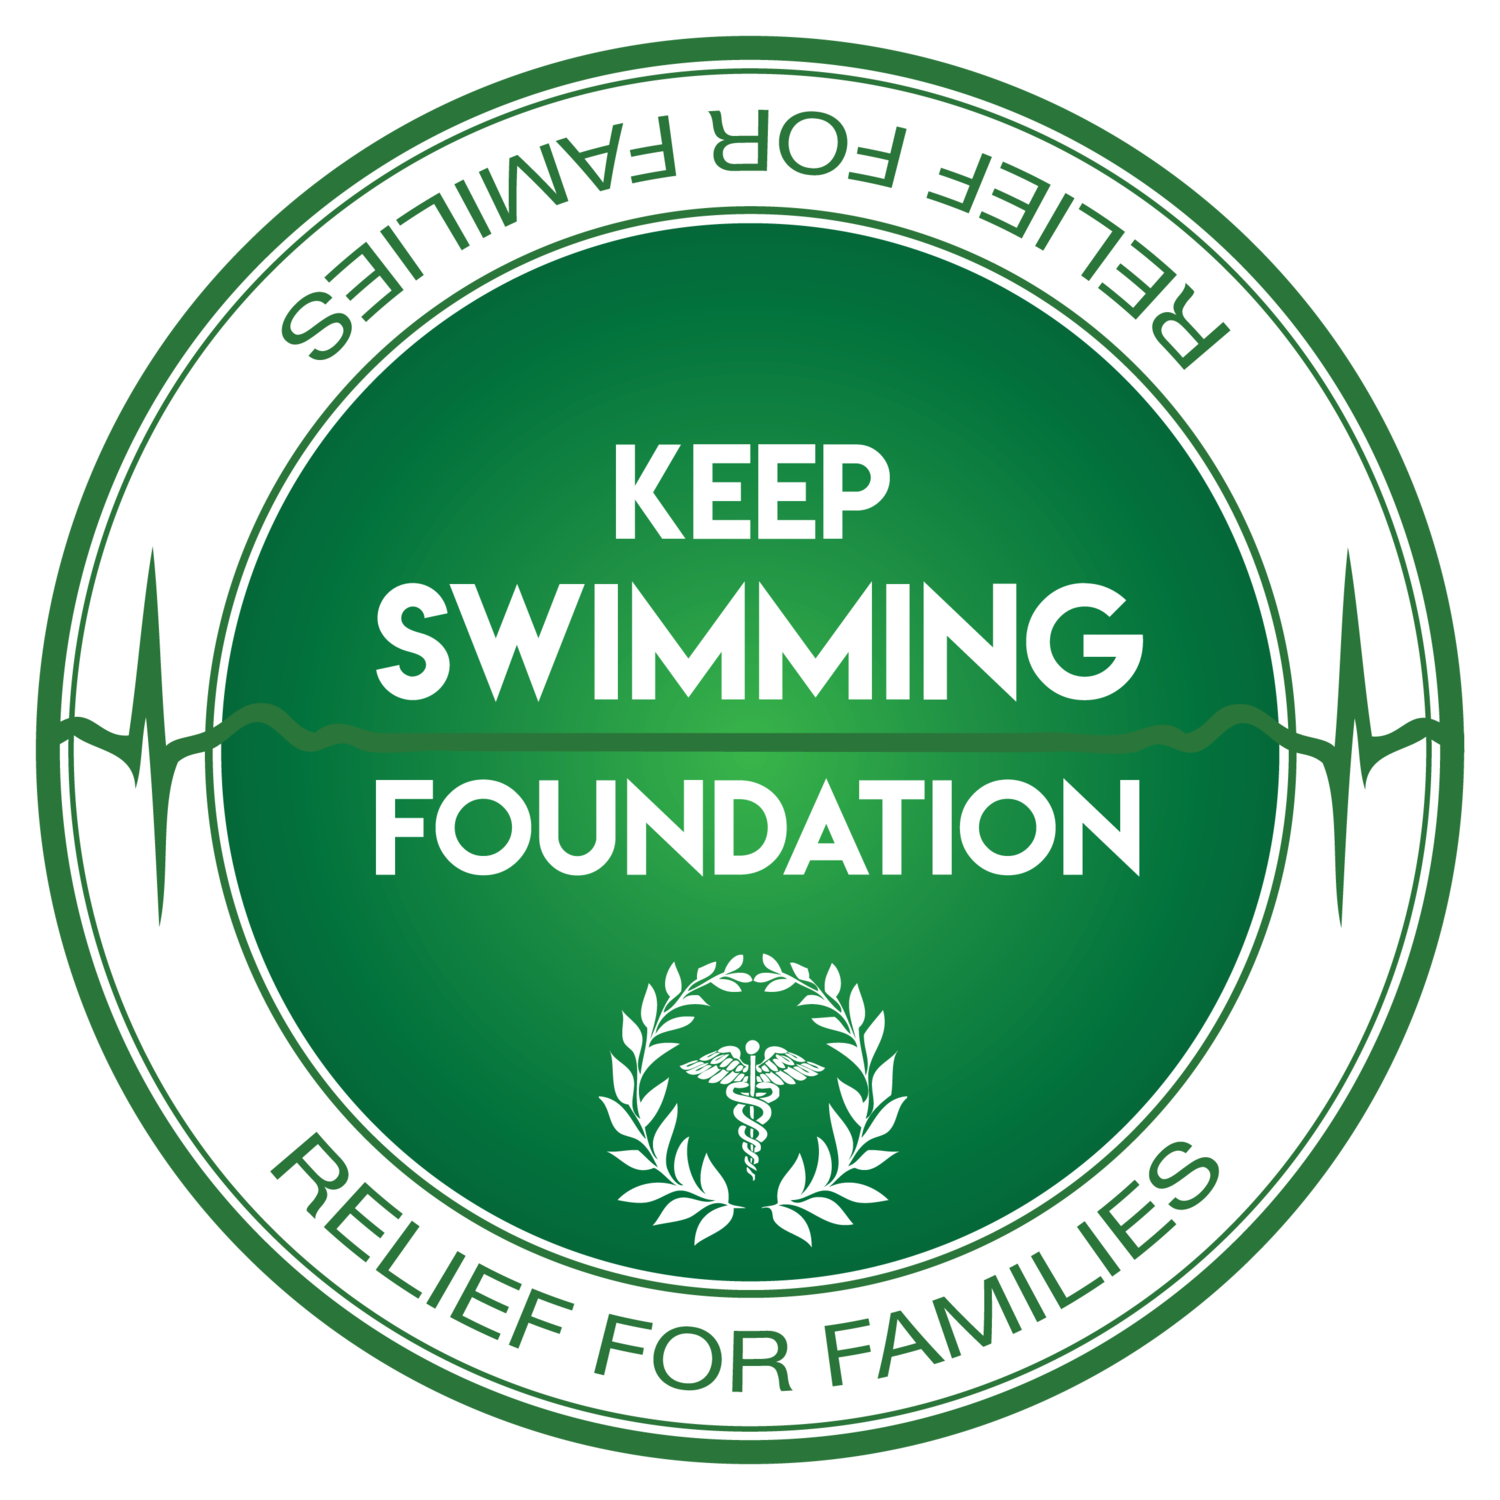 Keep Swimming Foundation